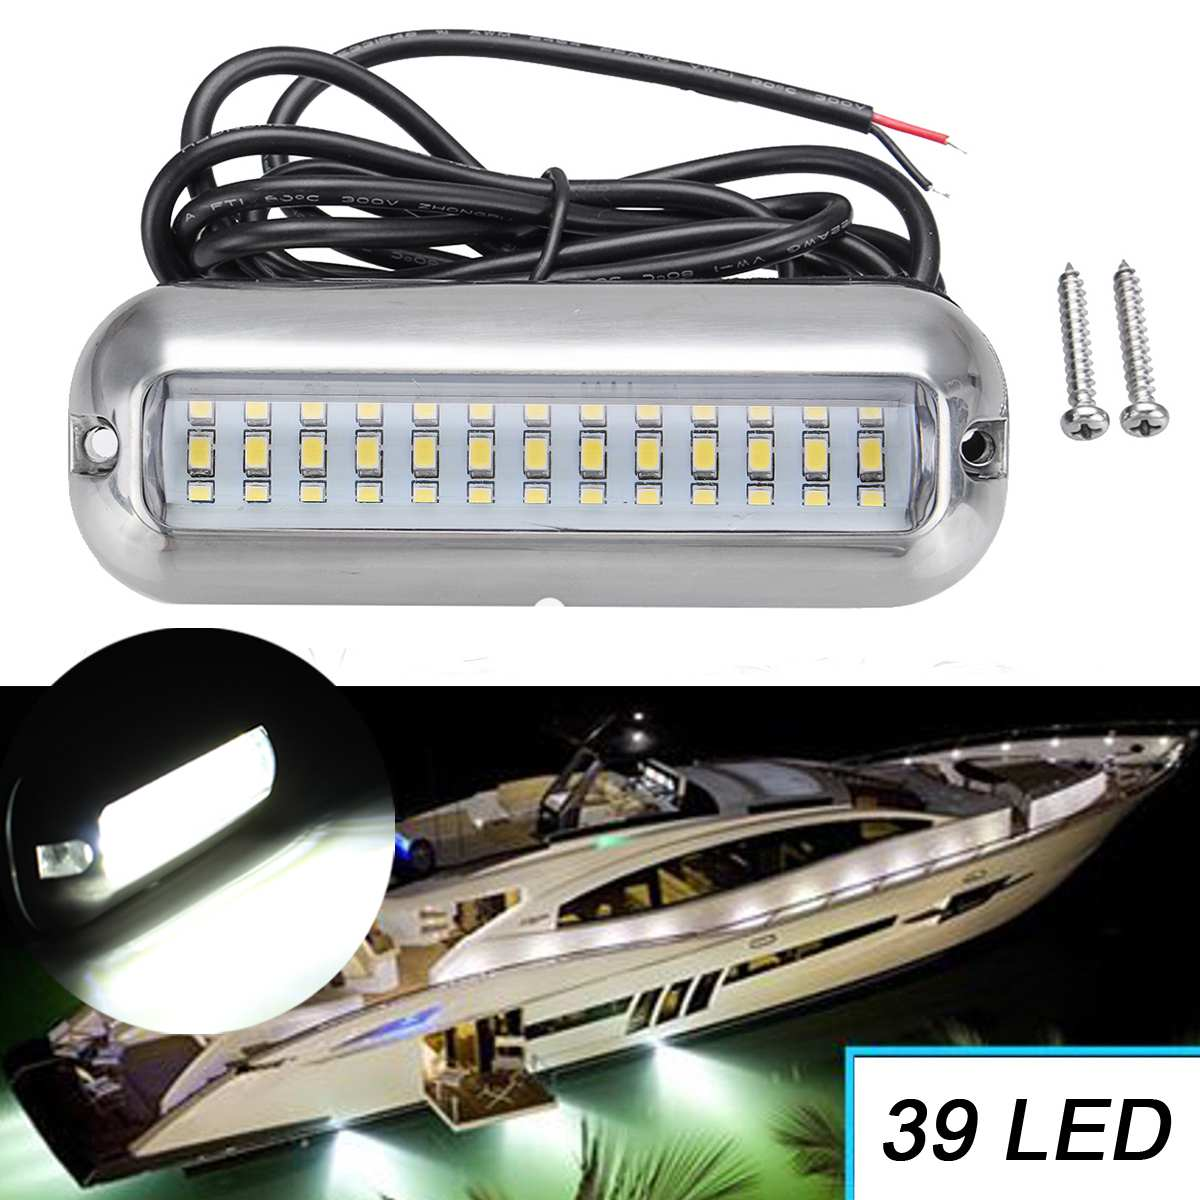 27LED Blue Underwater Pontoon Marine Boat Fish Bait Yacht 12V Transom Light Lamp